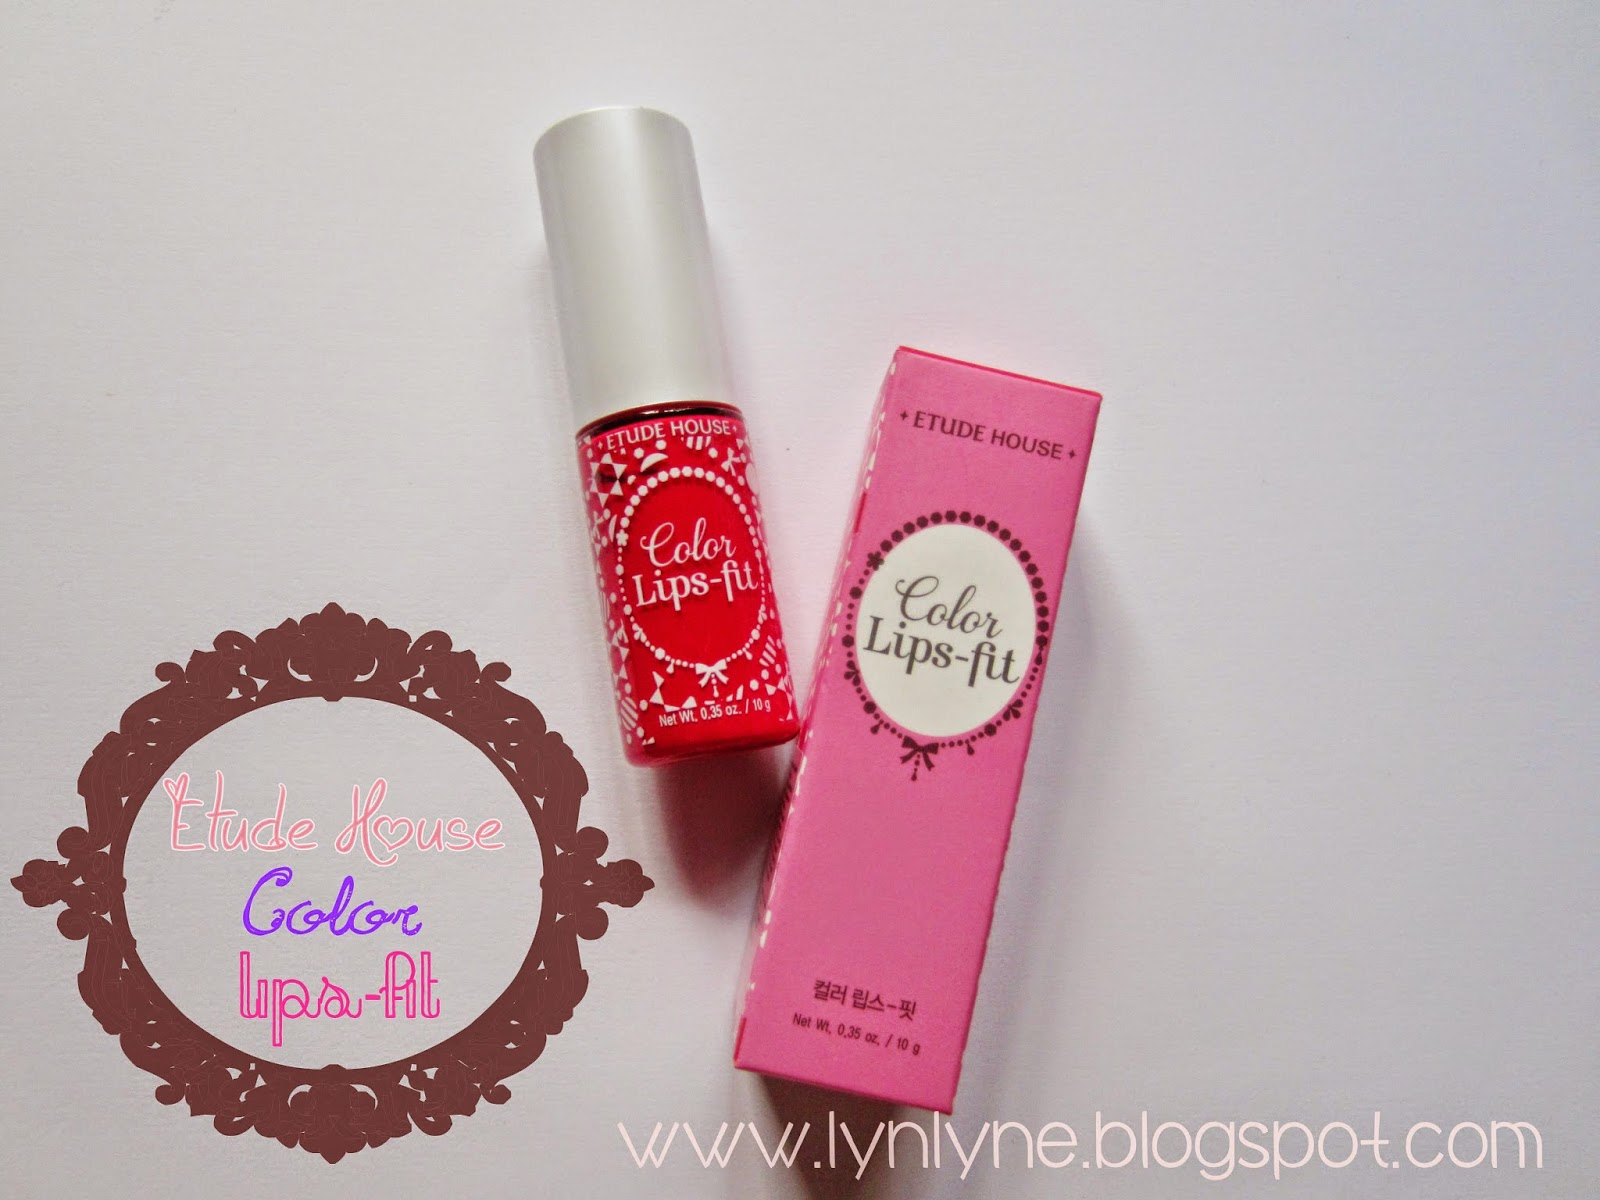 Etude House Color Lips-Fit in RD301 Perfect Fit Red ...